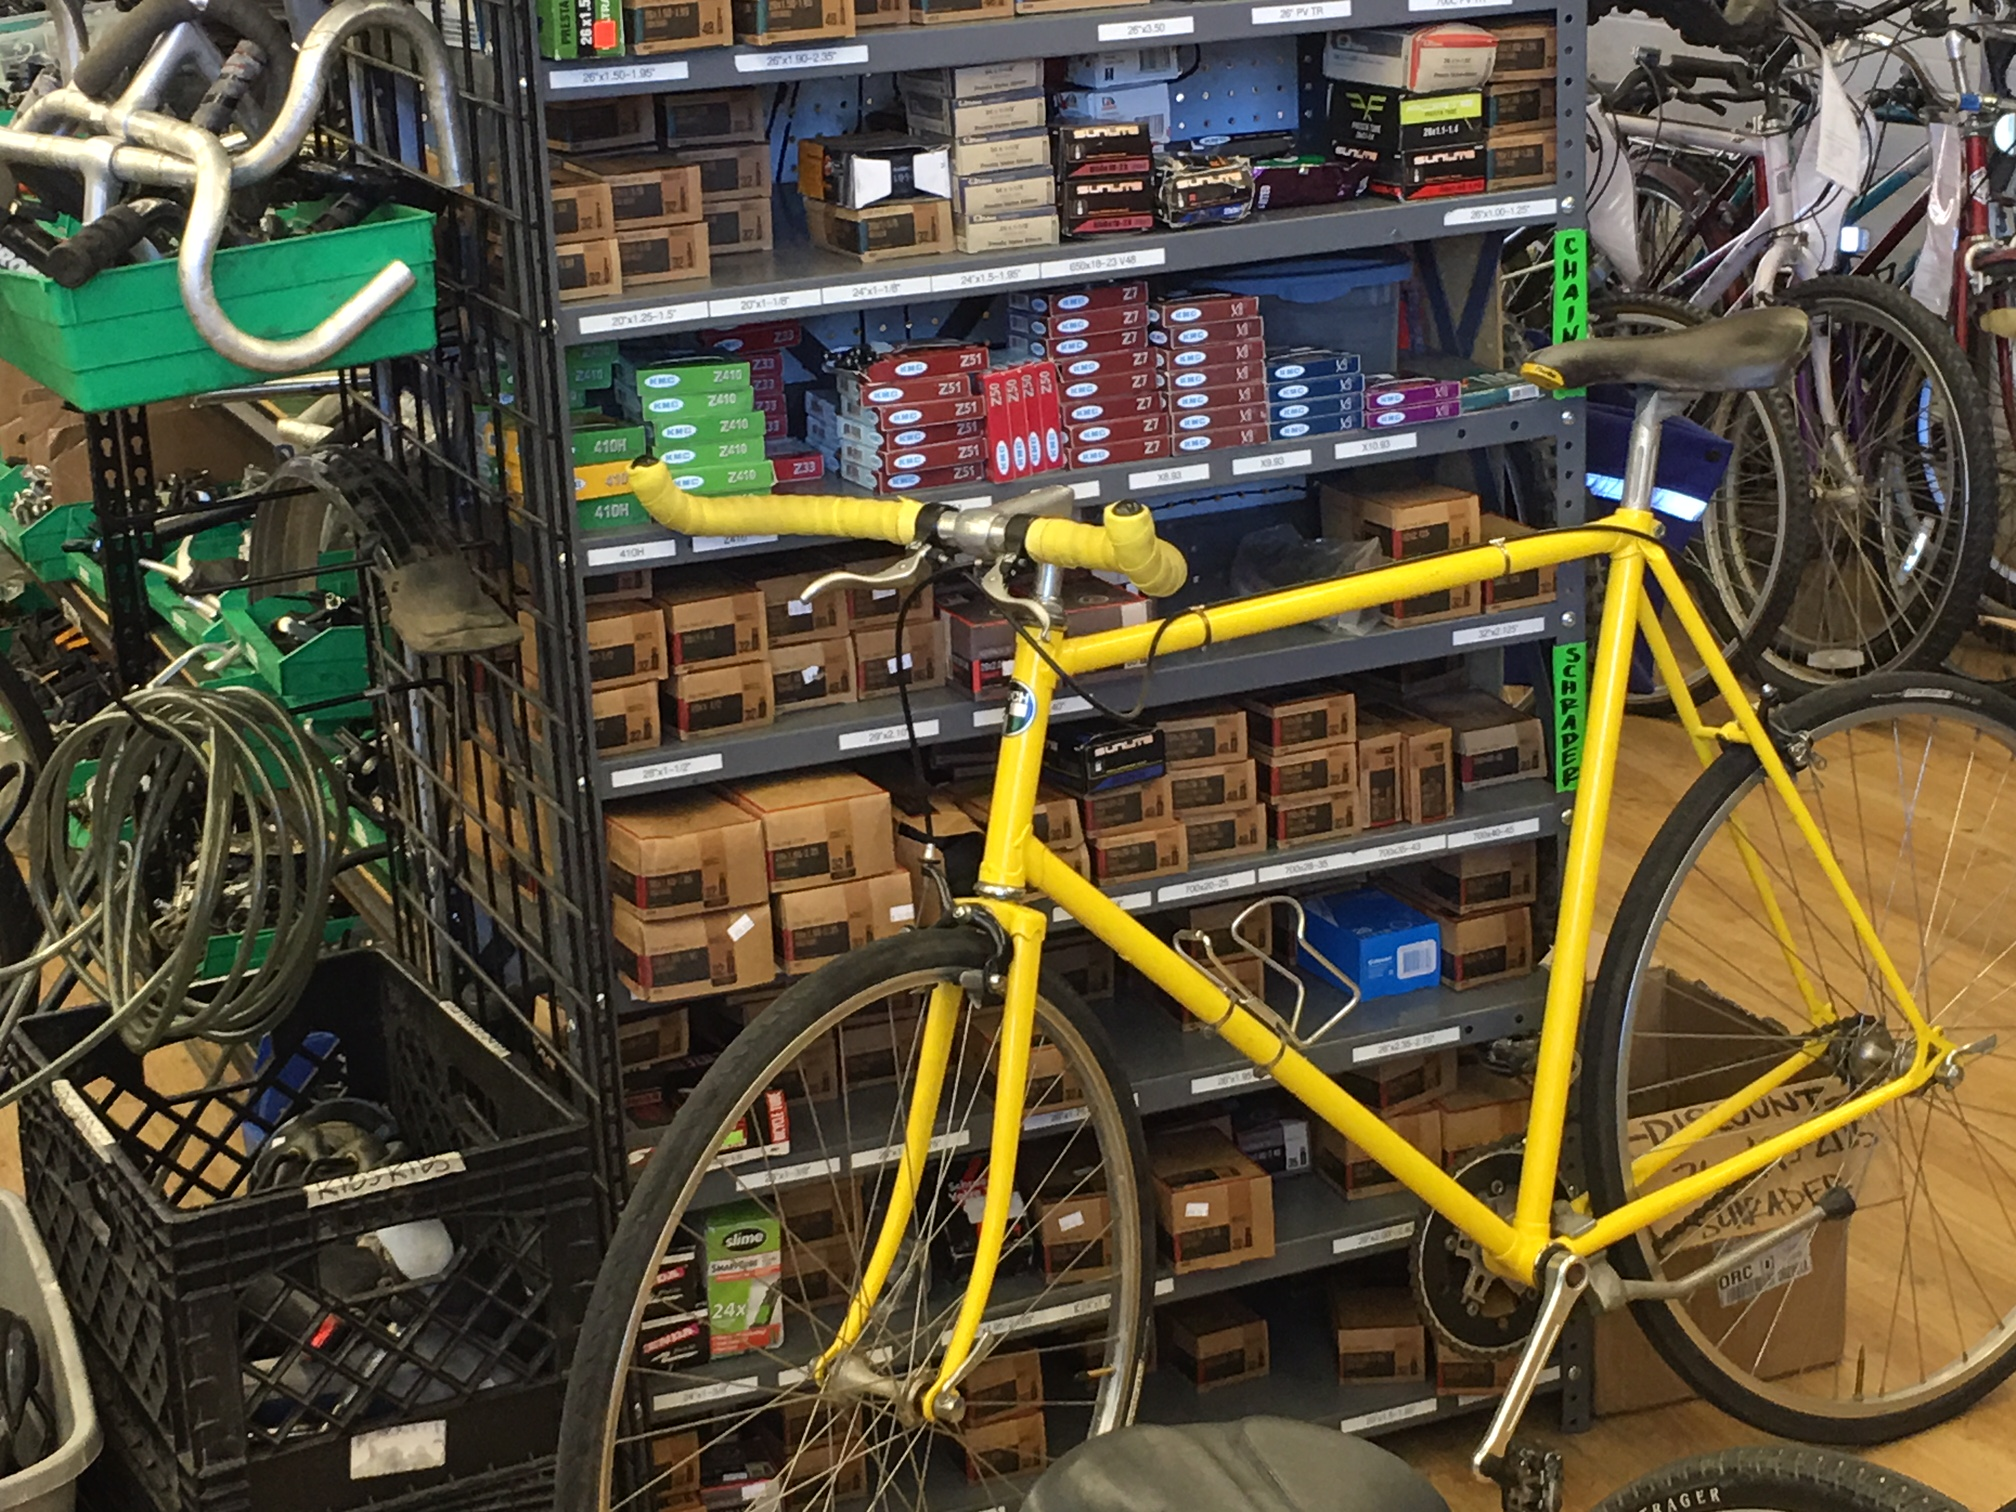 Paul Maull's Tall Yellow Fixie will be a hit & soon to be seen cruising around Santa Ana with a new owner!